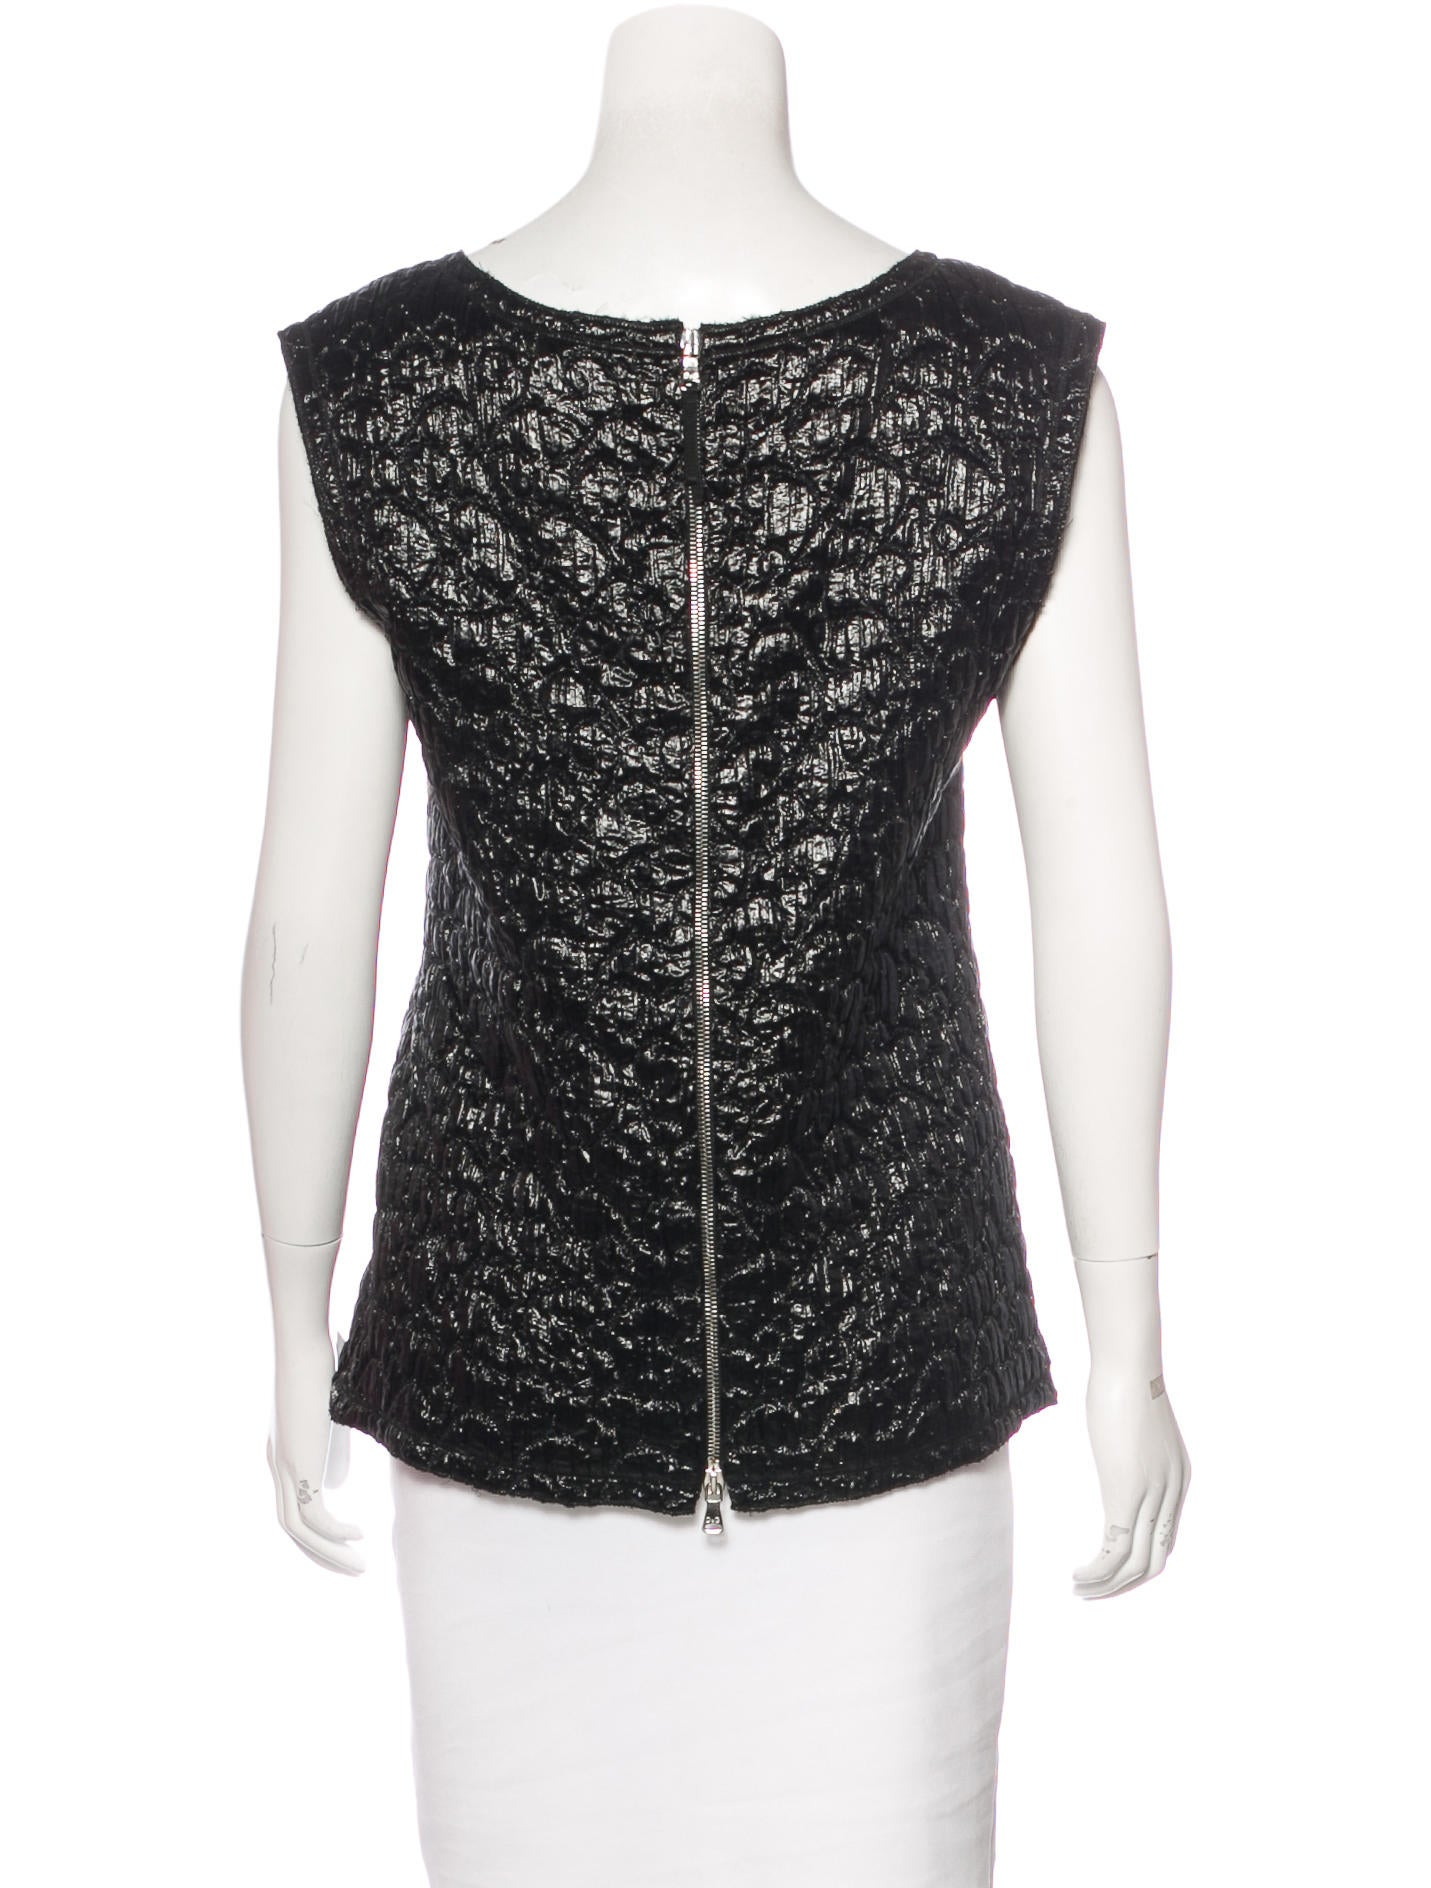 D g quilted wool blend top clothing wdg34580 the for Best wool shirt jackets